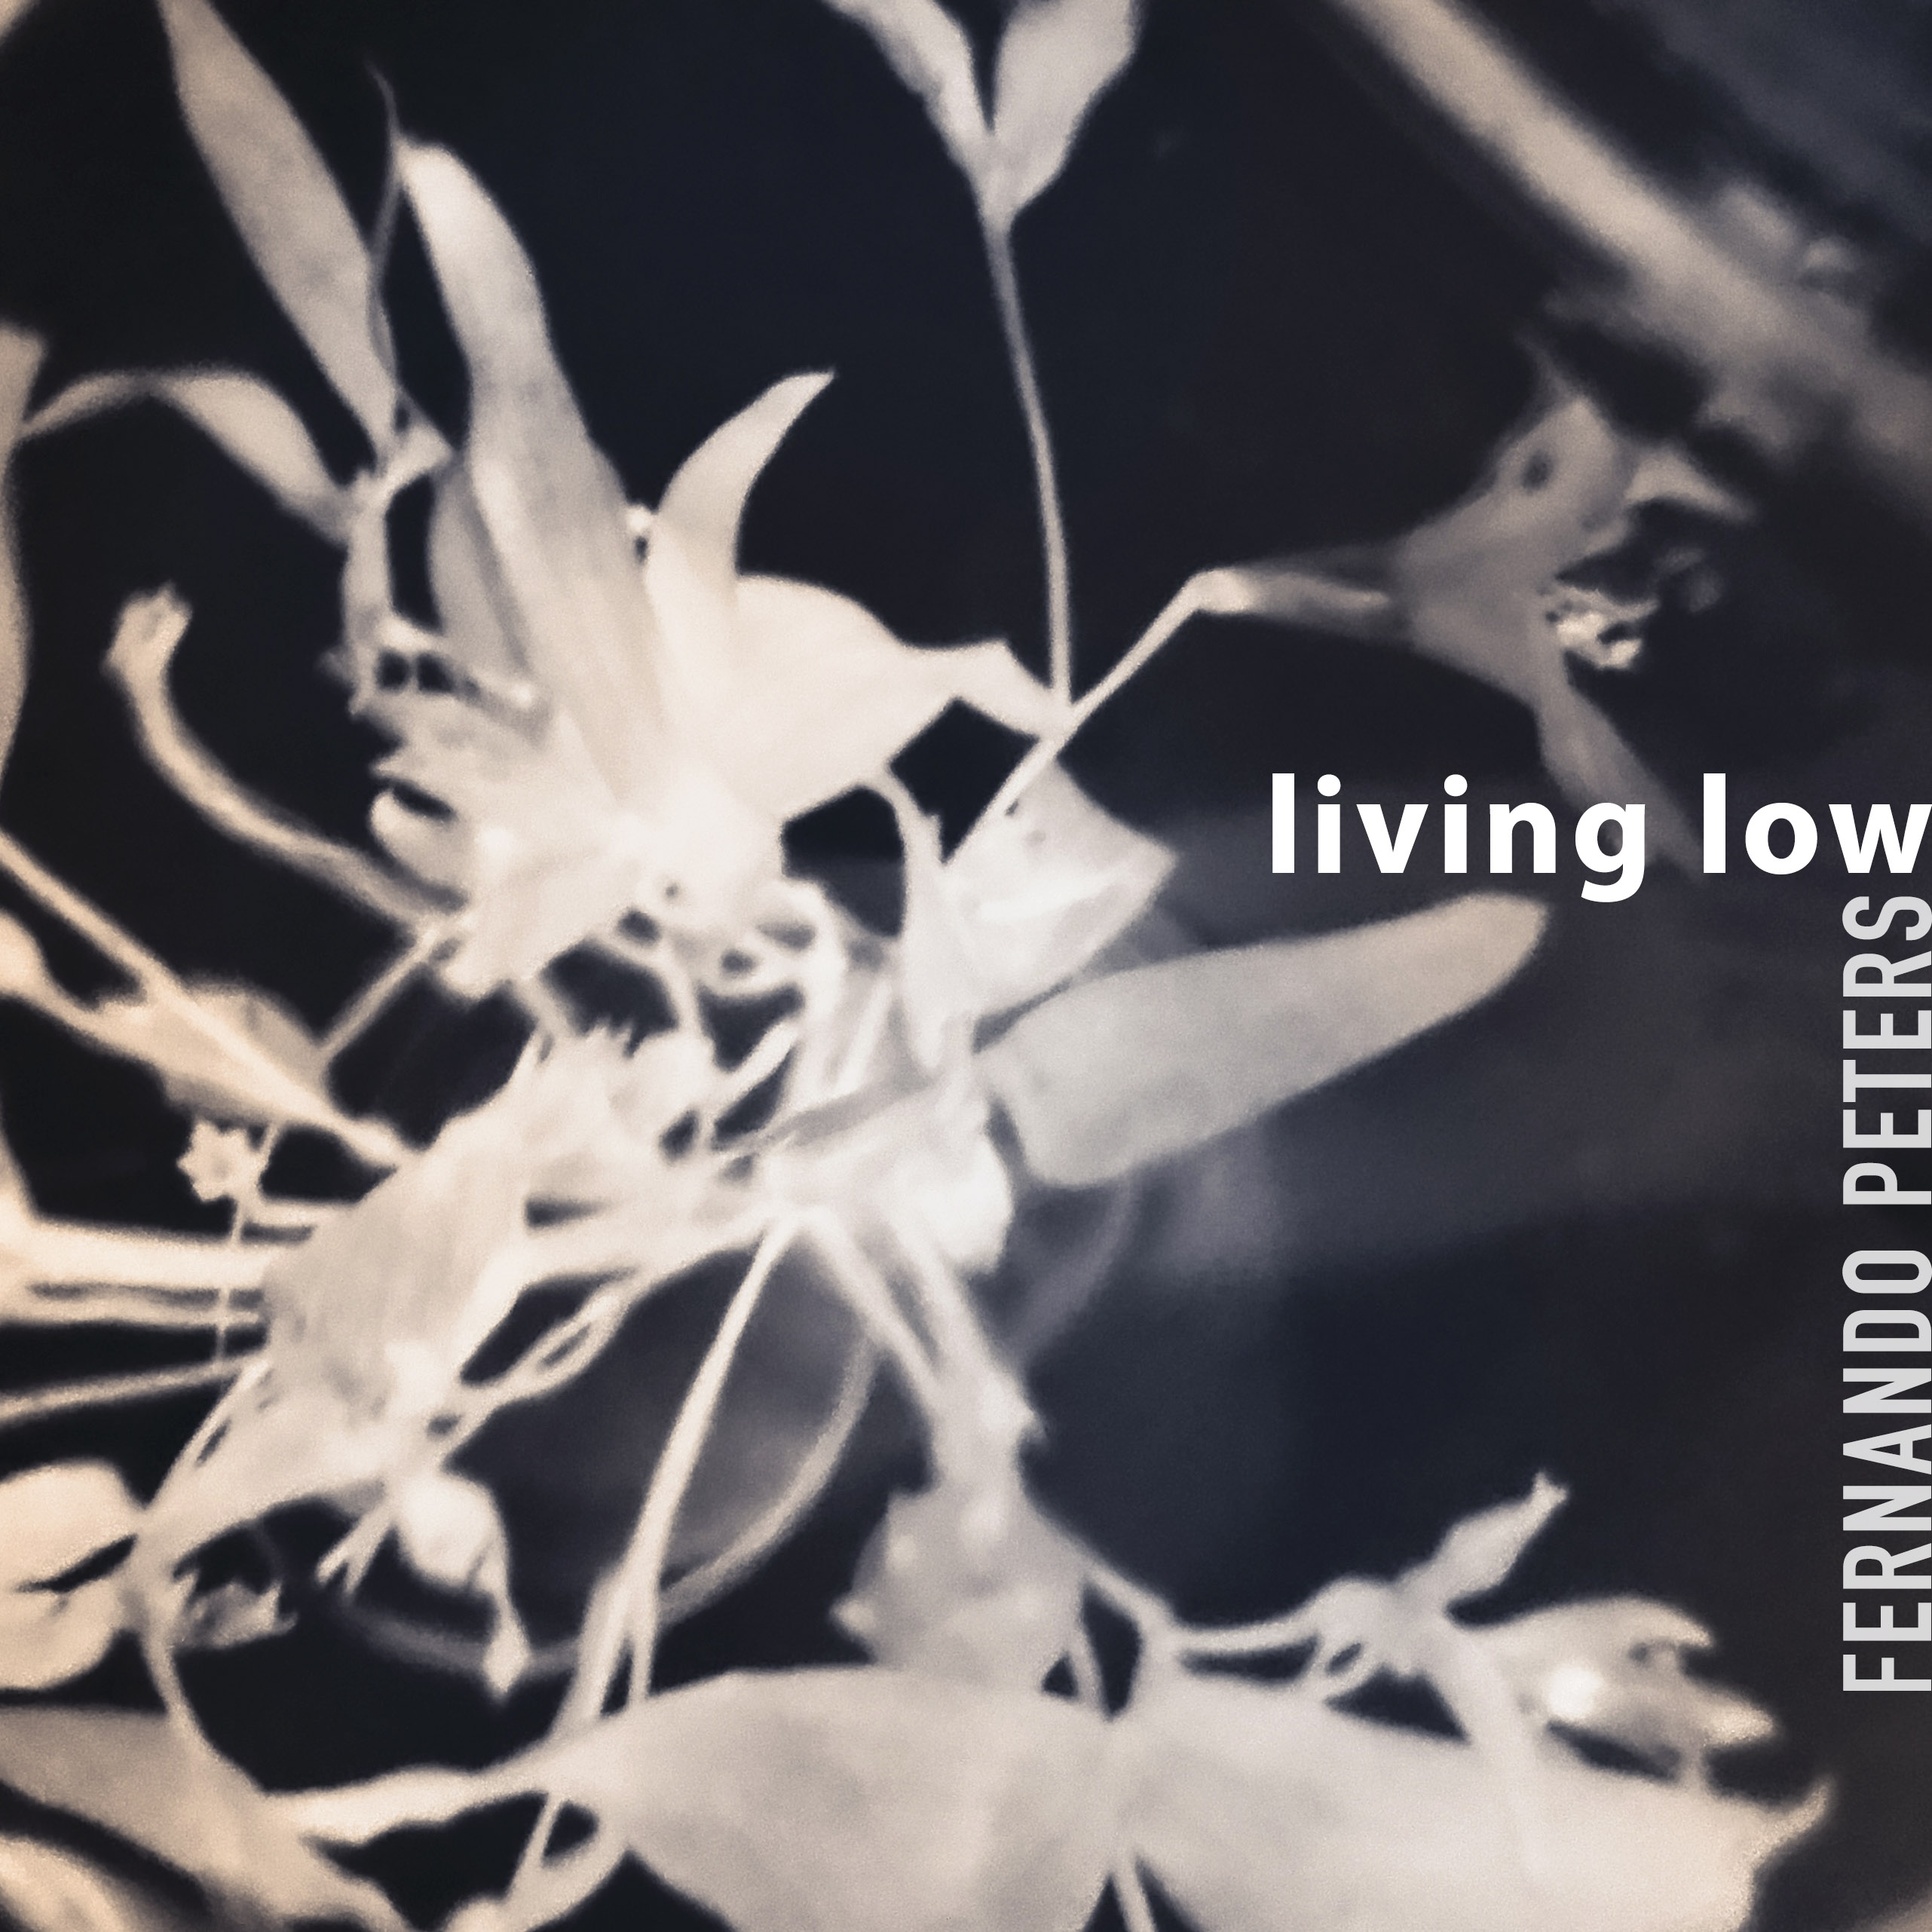 LivingLow_covernew